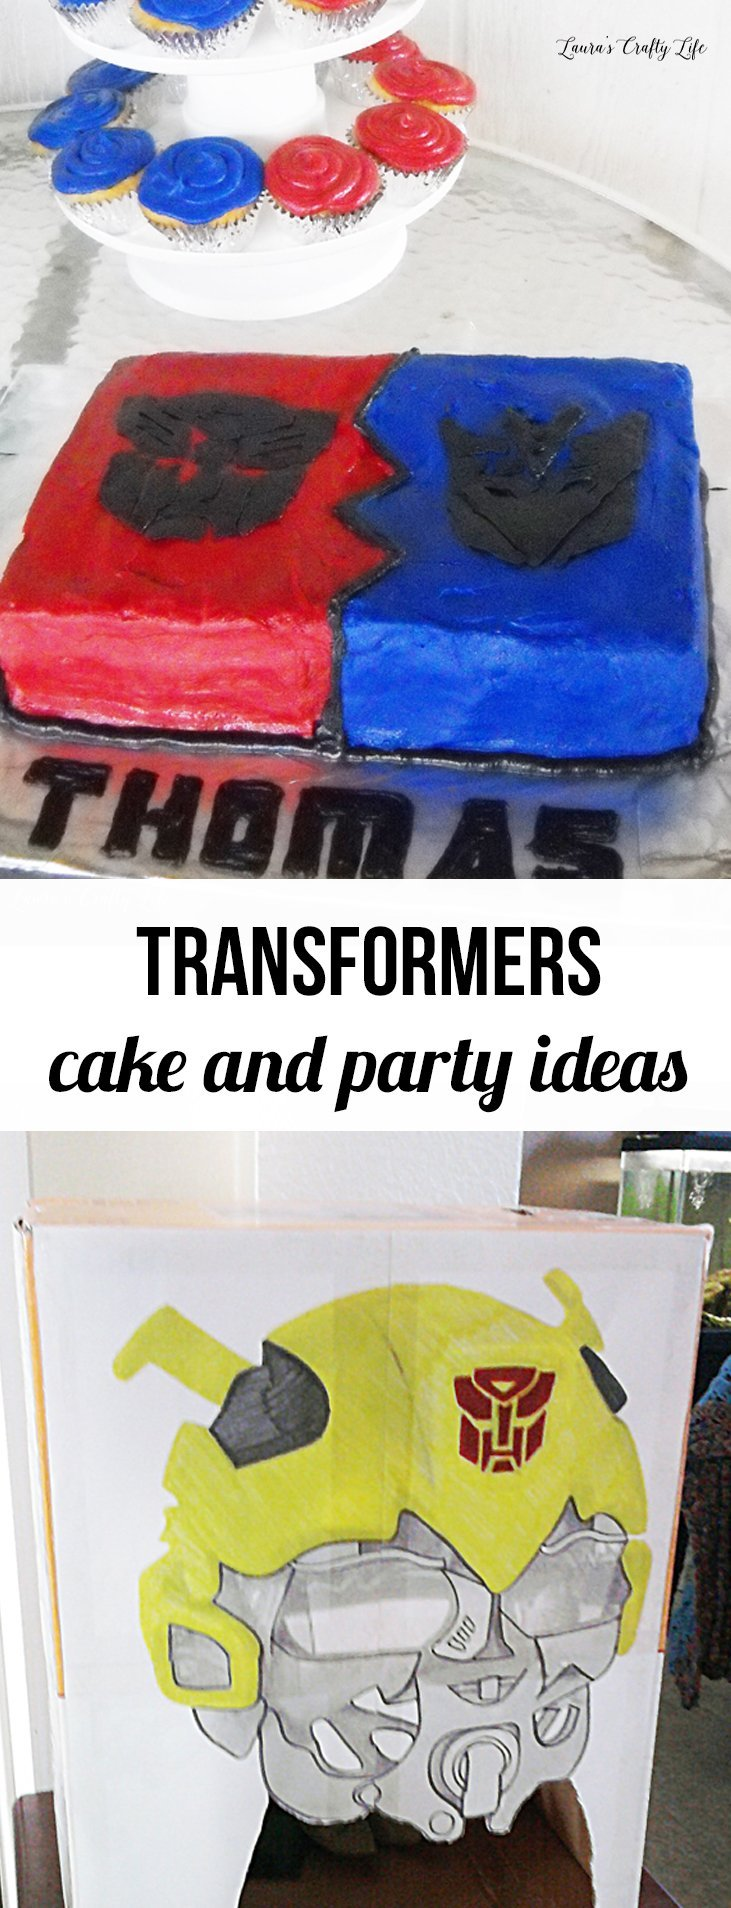 Transformers Cake and Party Ideas